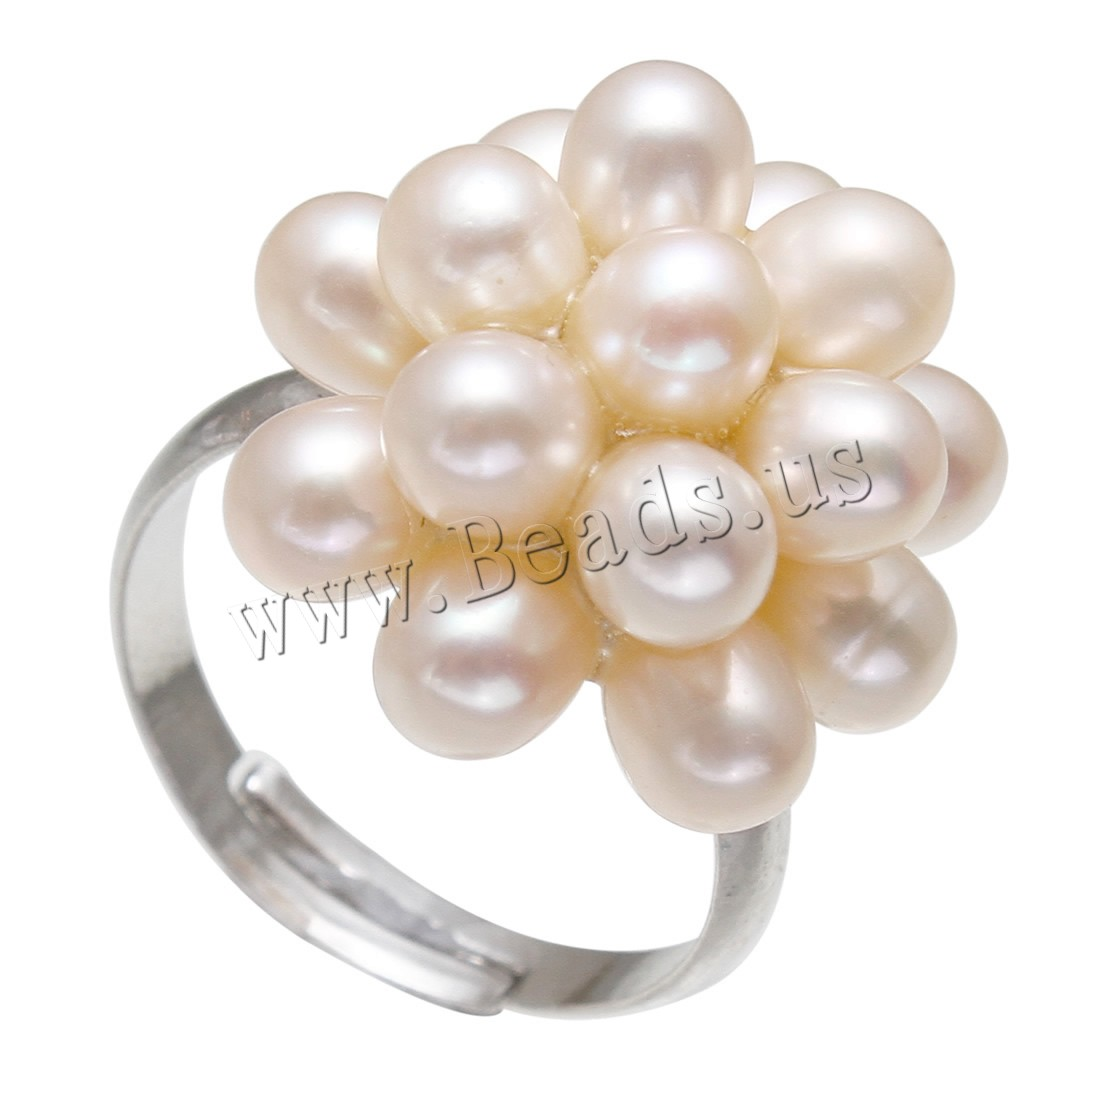 Buy Freshwater Pearl Finger Ring Brass Freshwater Pearl Flower platinum color plated woman pink nickel lead & cadmium free 4-5mmuff0c18-19mm US Ring Size:8 Sold PC